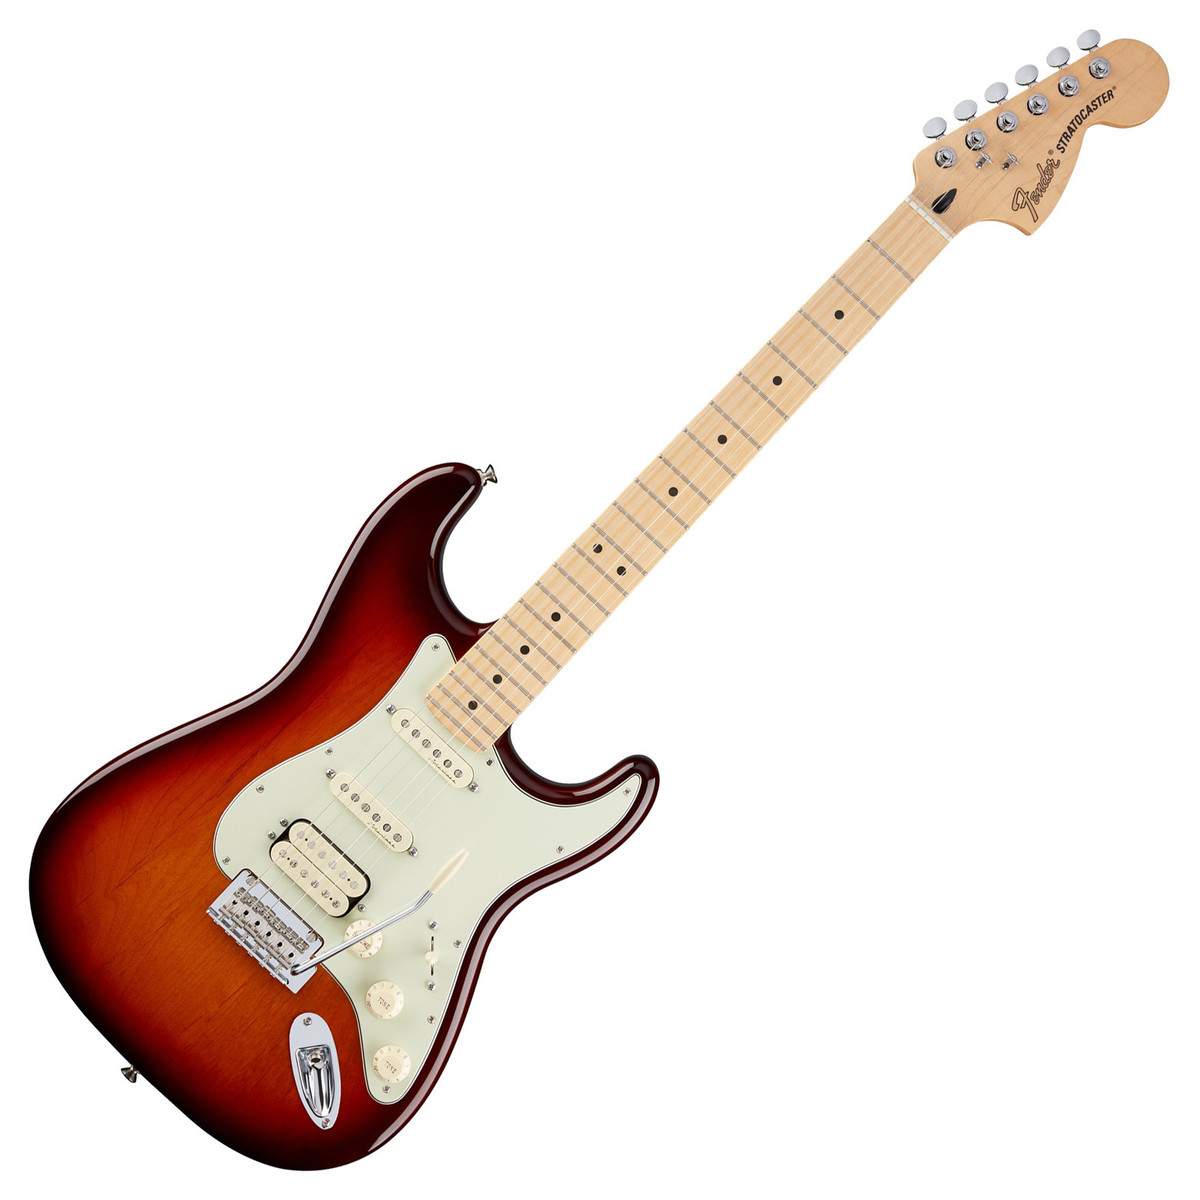 fender deluxe stratocaster hss electric guitar tobacco sunburst box opened at gear4music. Black Bedroom Furniture Sets. Home Design Ideas